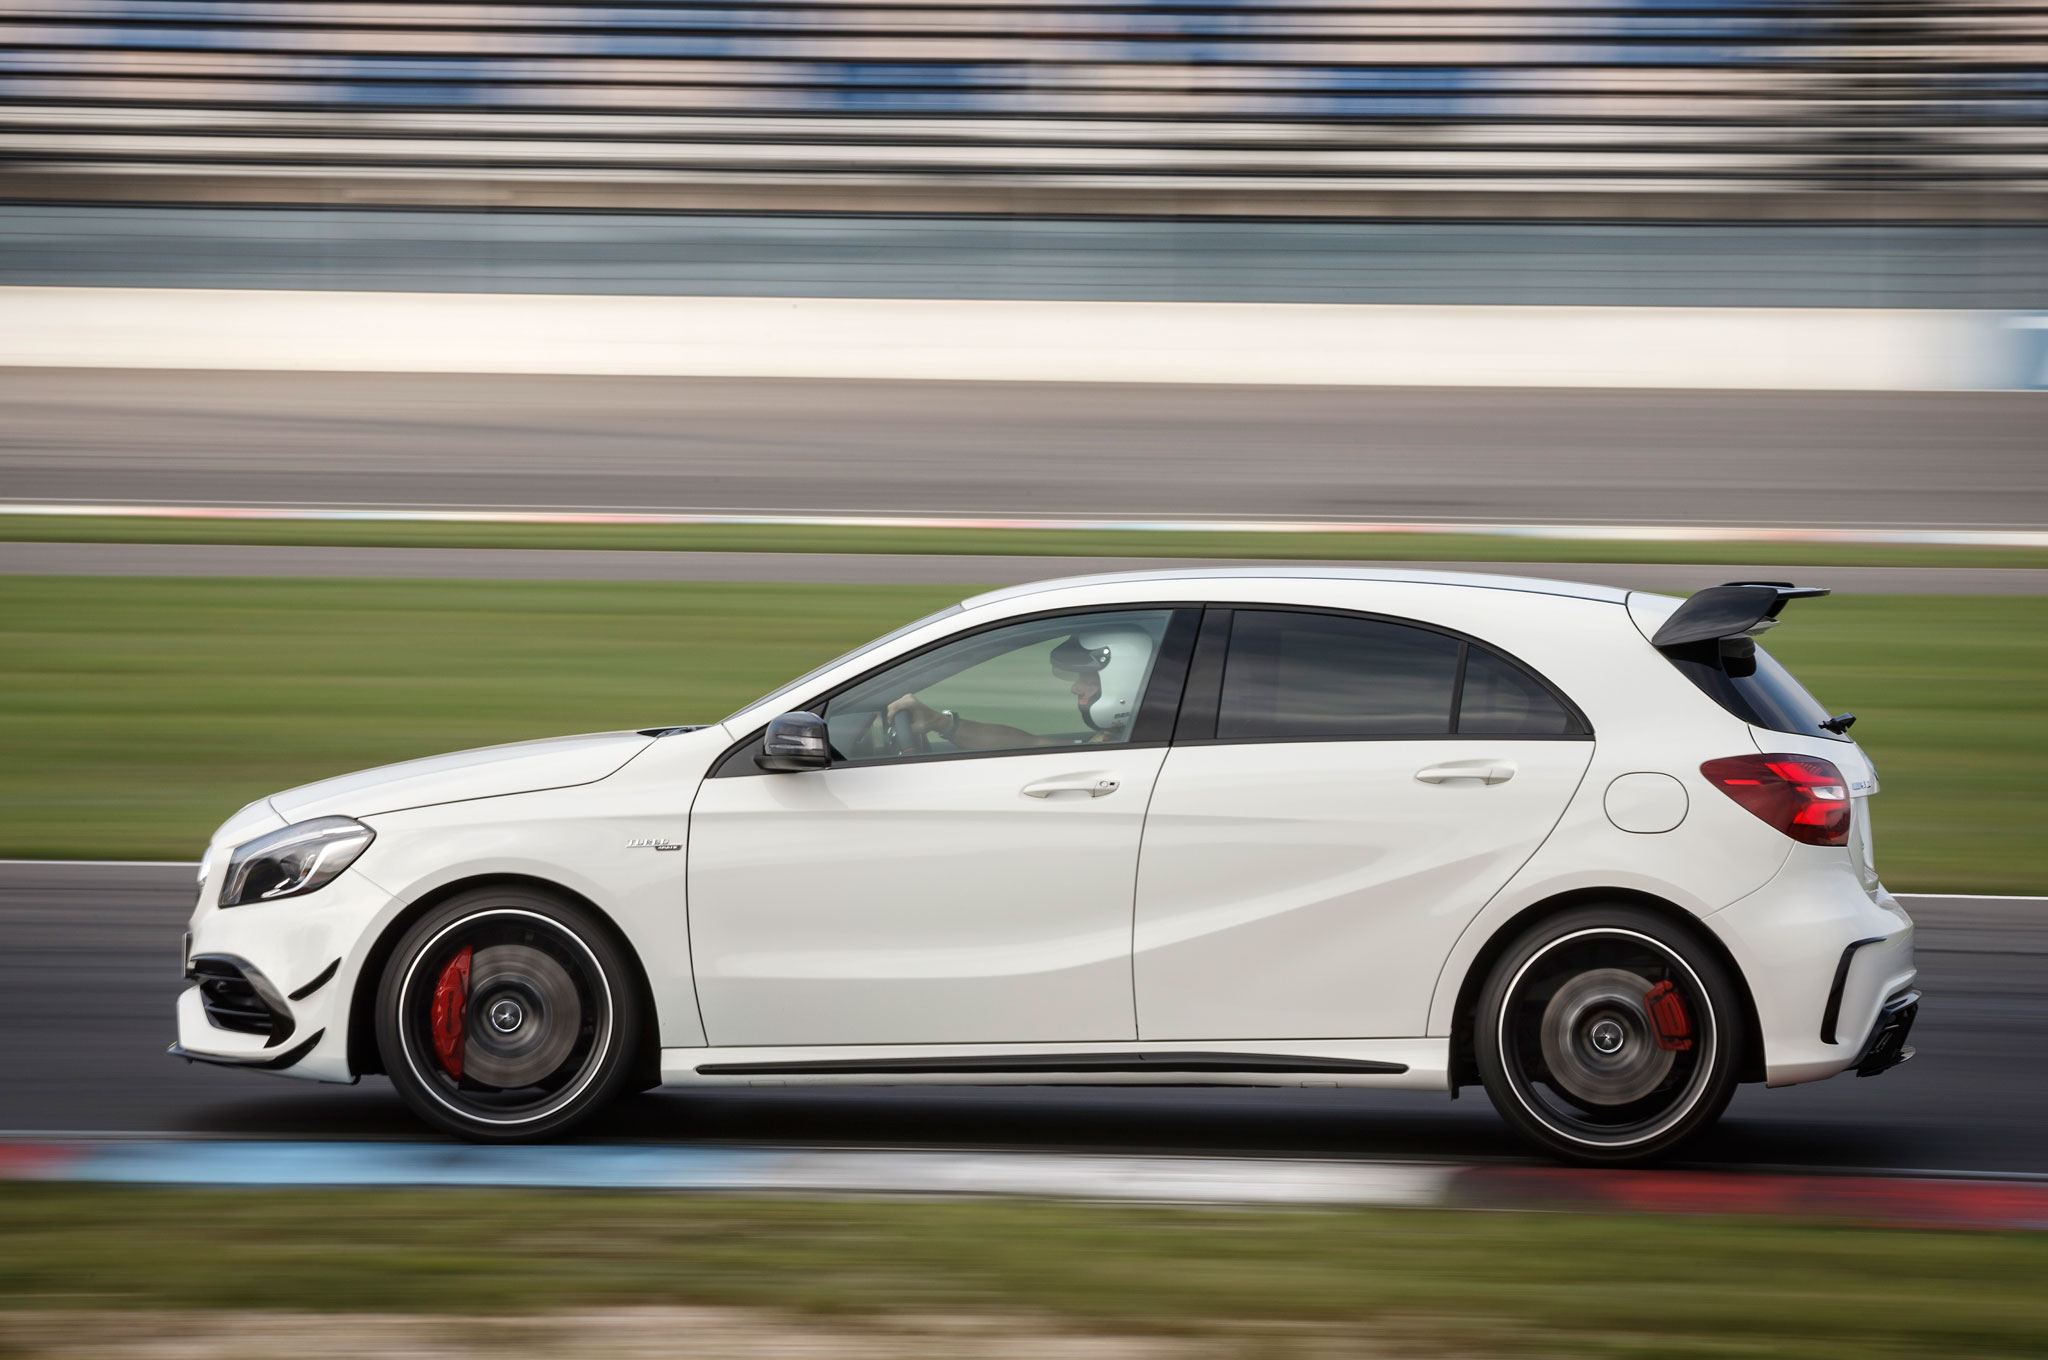 https://st.automobilemag.com/uploads/sites/11/2015/09/2016-Mercedes-AMG-A45-4Matic-side-profile-in-motion-02.jpg